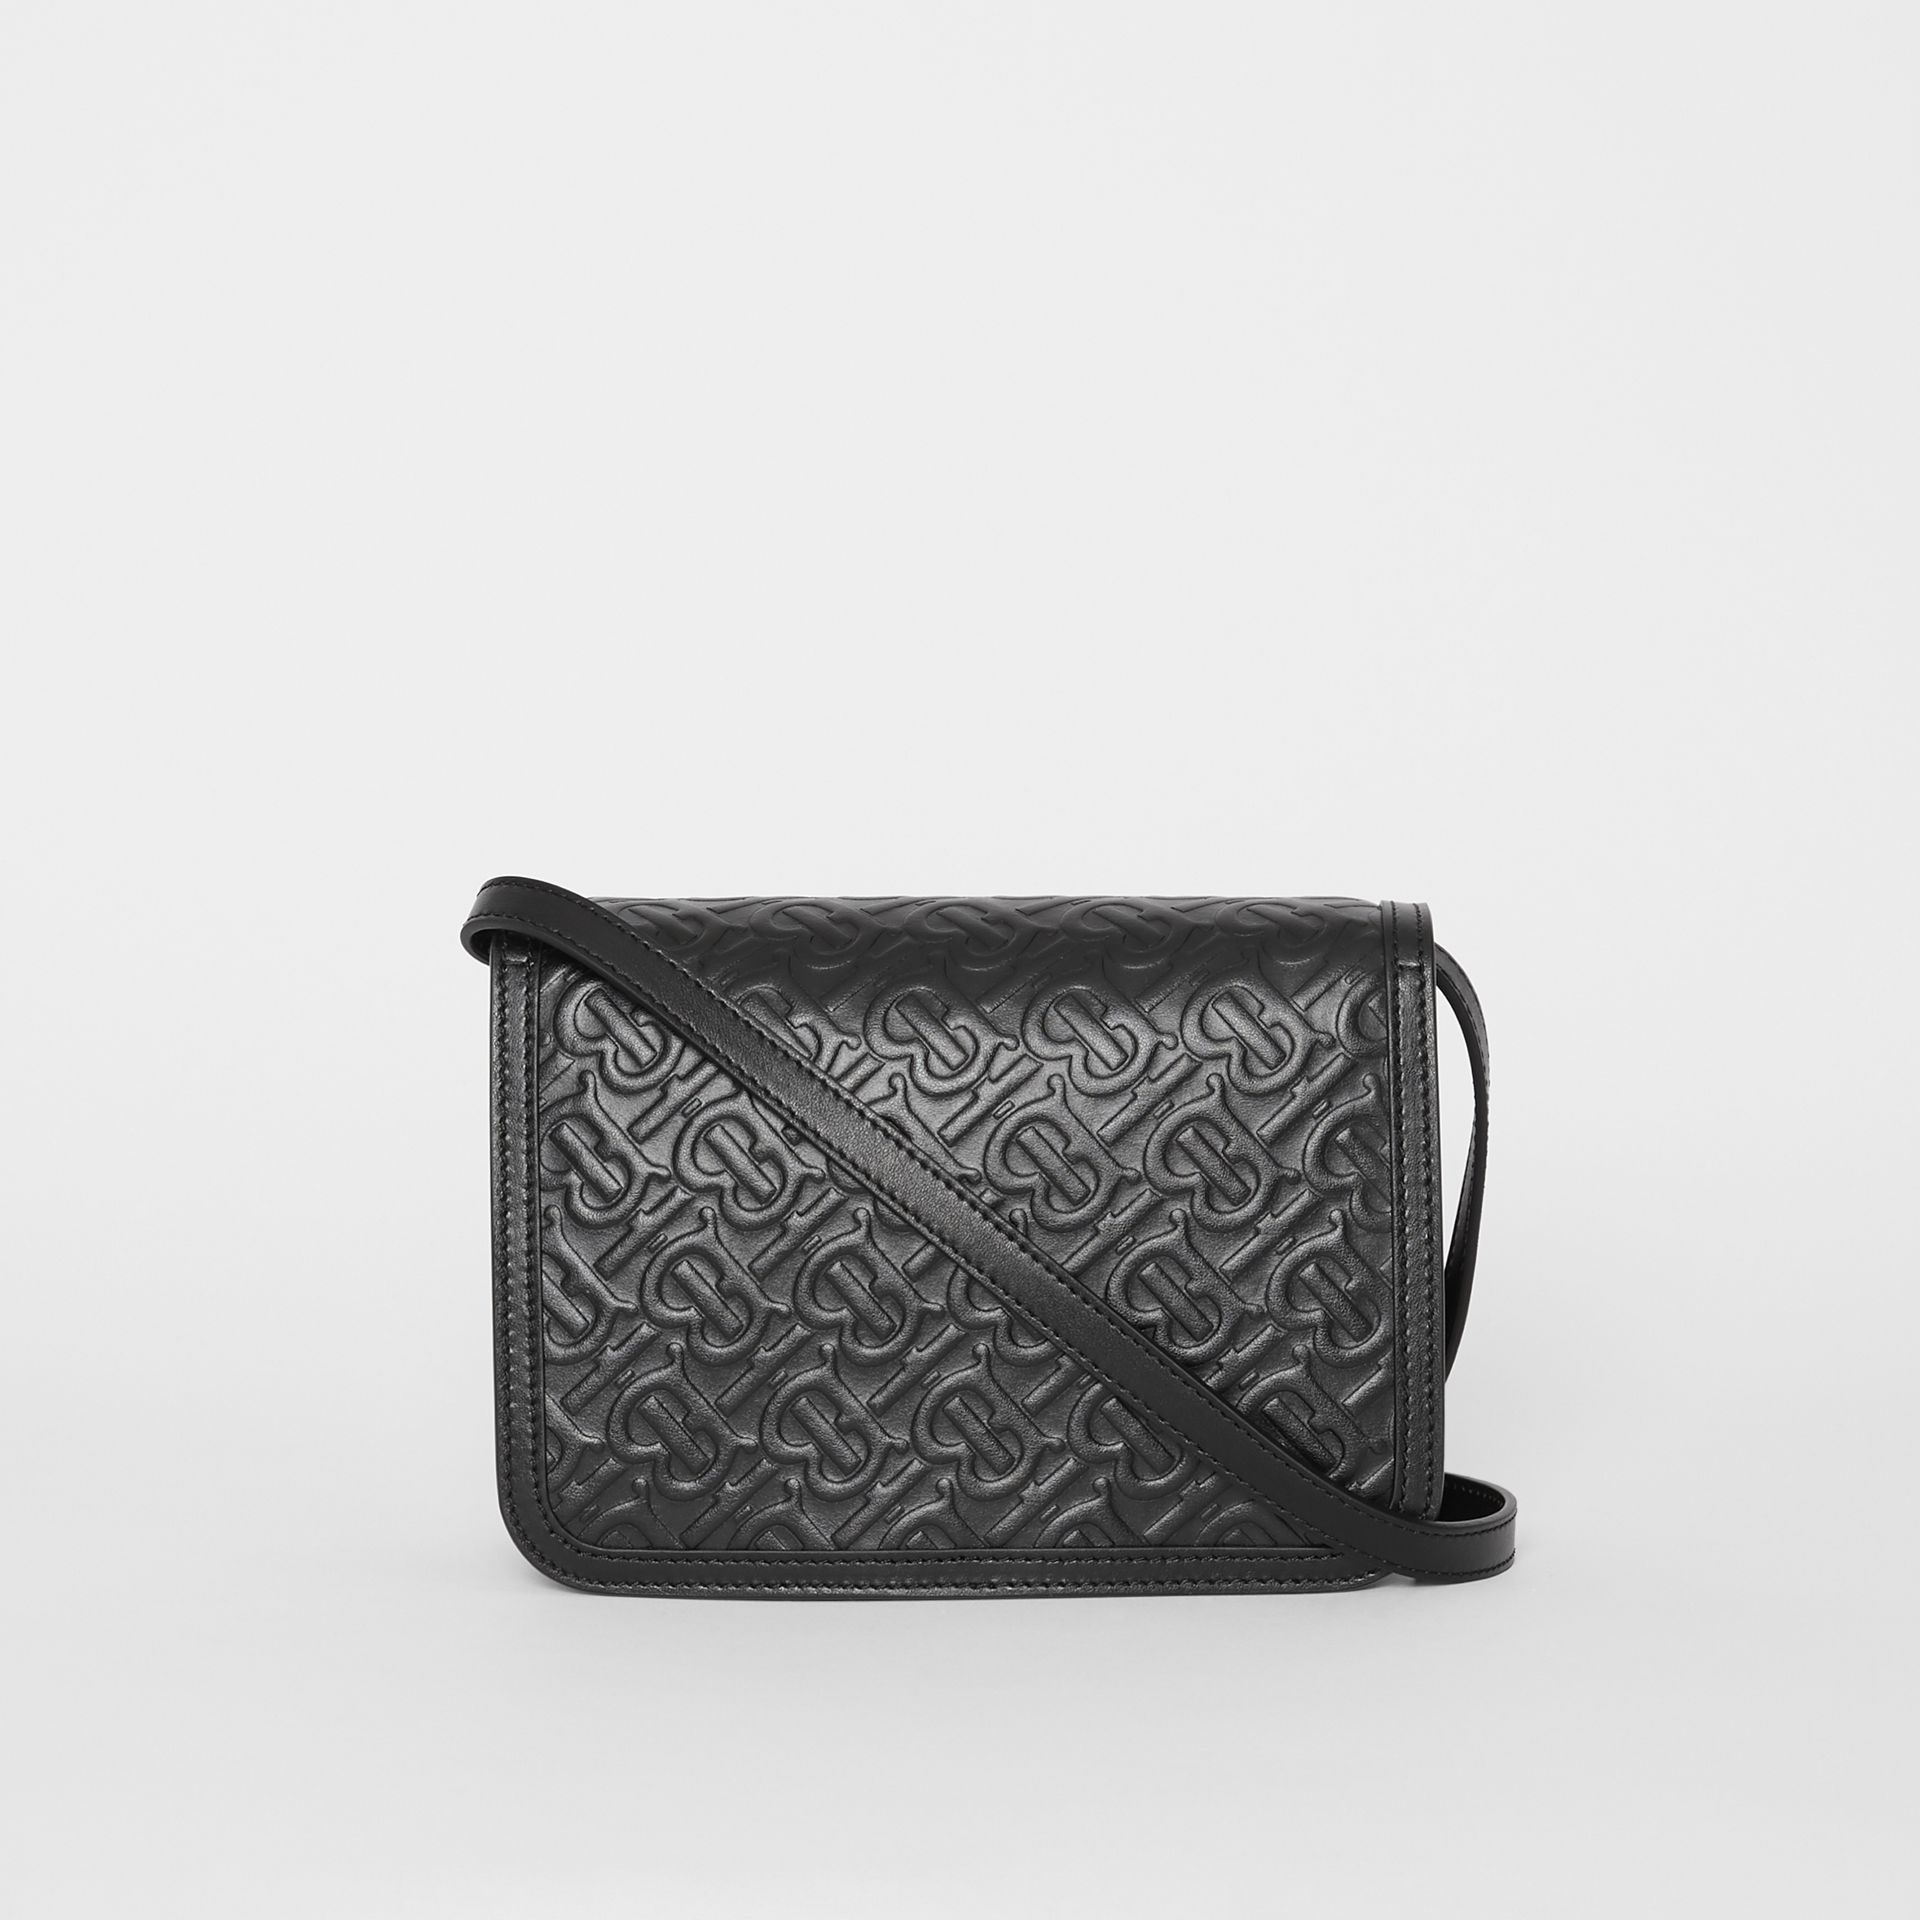 Small Monogram Leather TB Bag in Black - Women | Burberry United Kingdom - gallery image 7